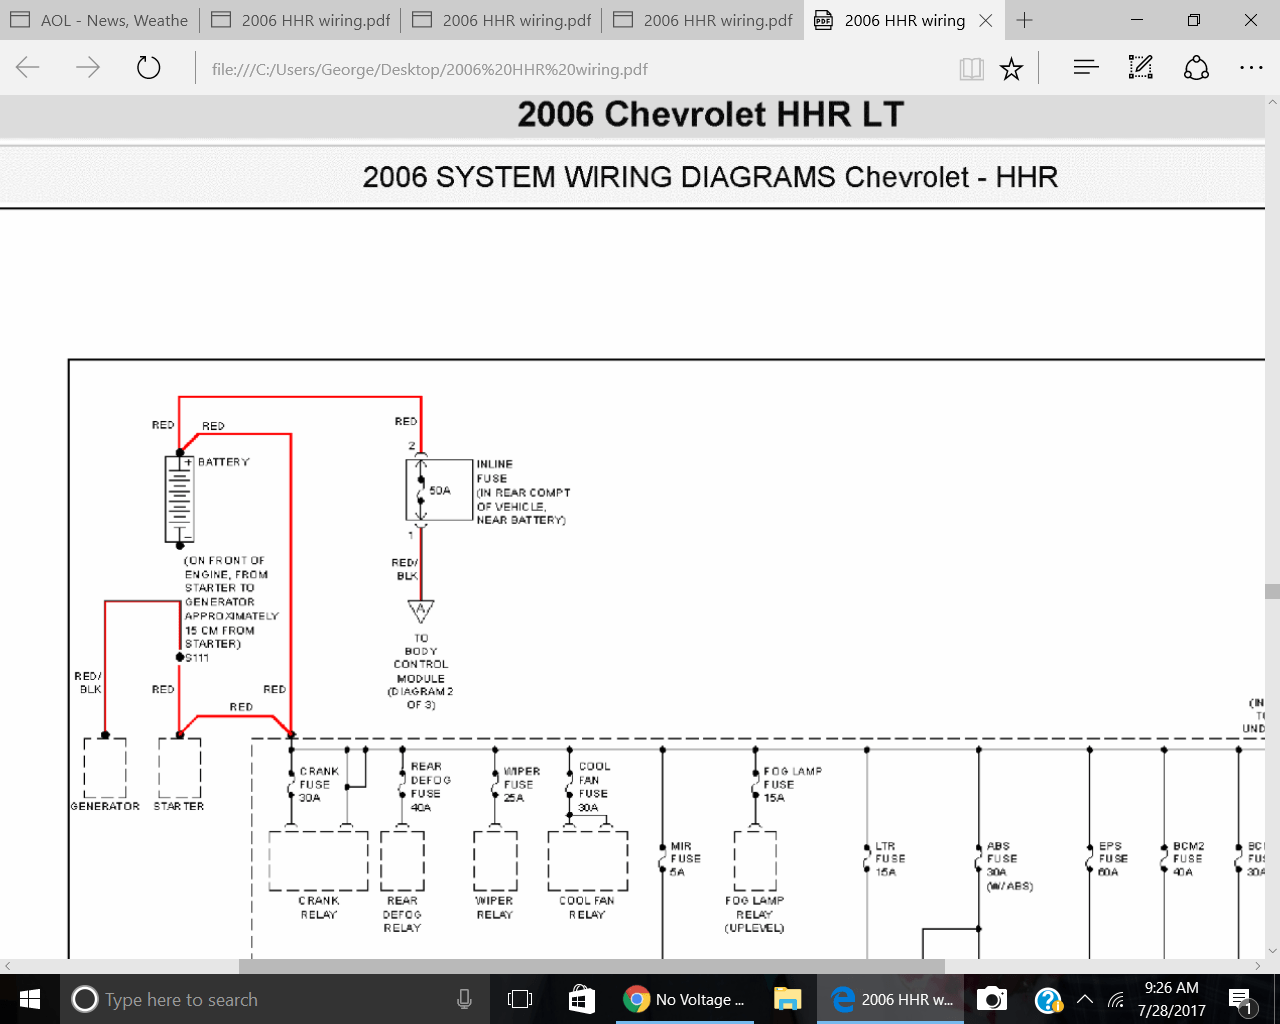 2009 Chevy Cobalt Lt Engine Diagram